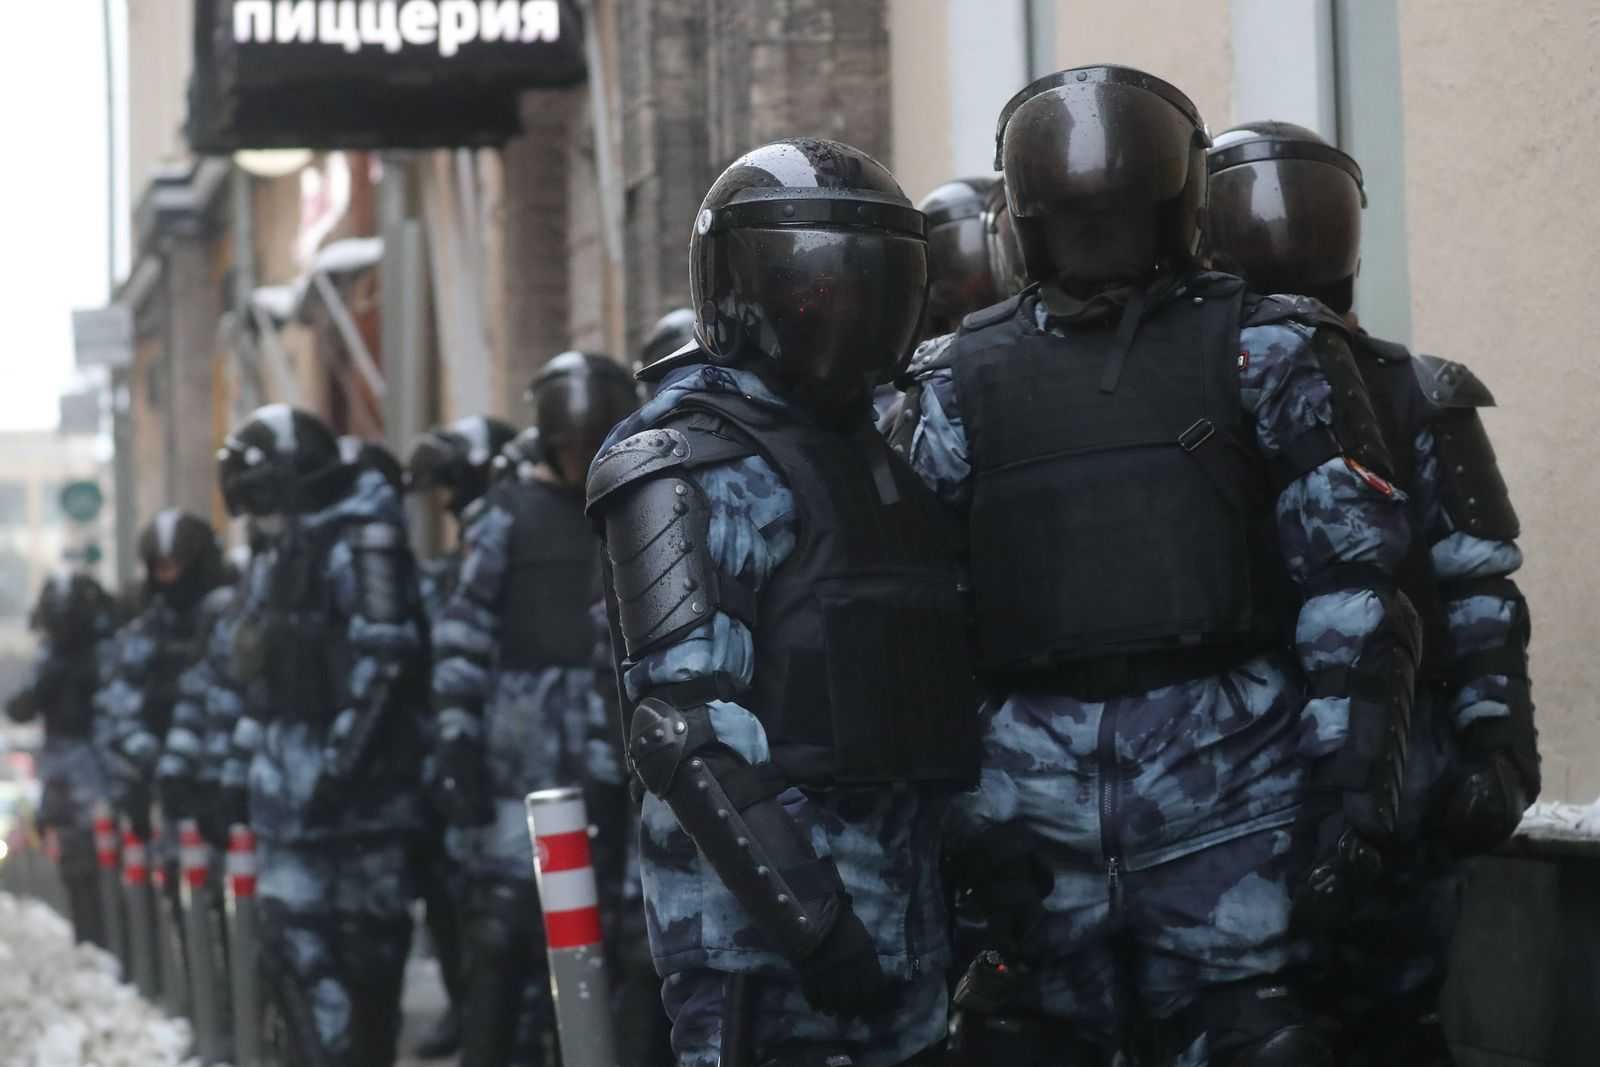 MOSCOW, RUSSIA - JANUARY 23, 2021: Riot police officers during an unauthorized rally in support of Russian opposition a